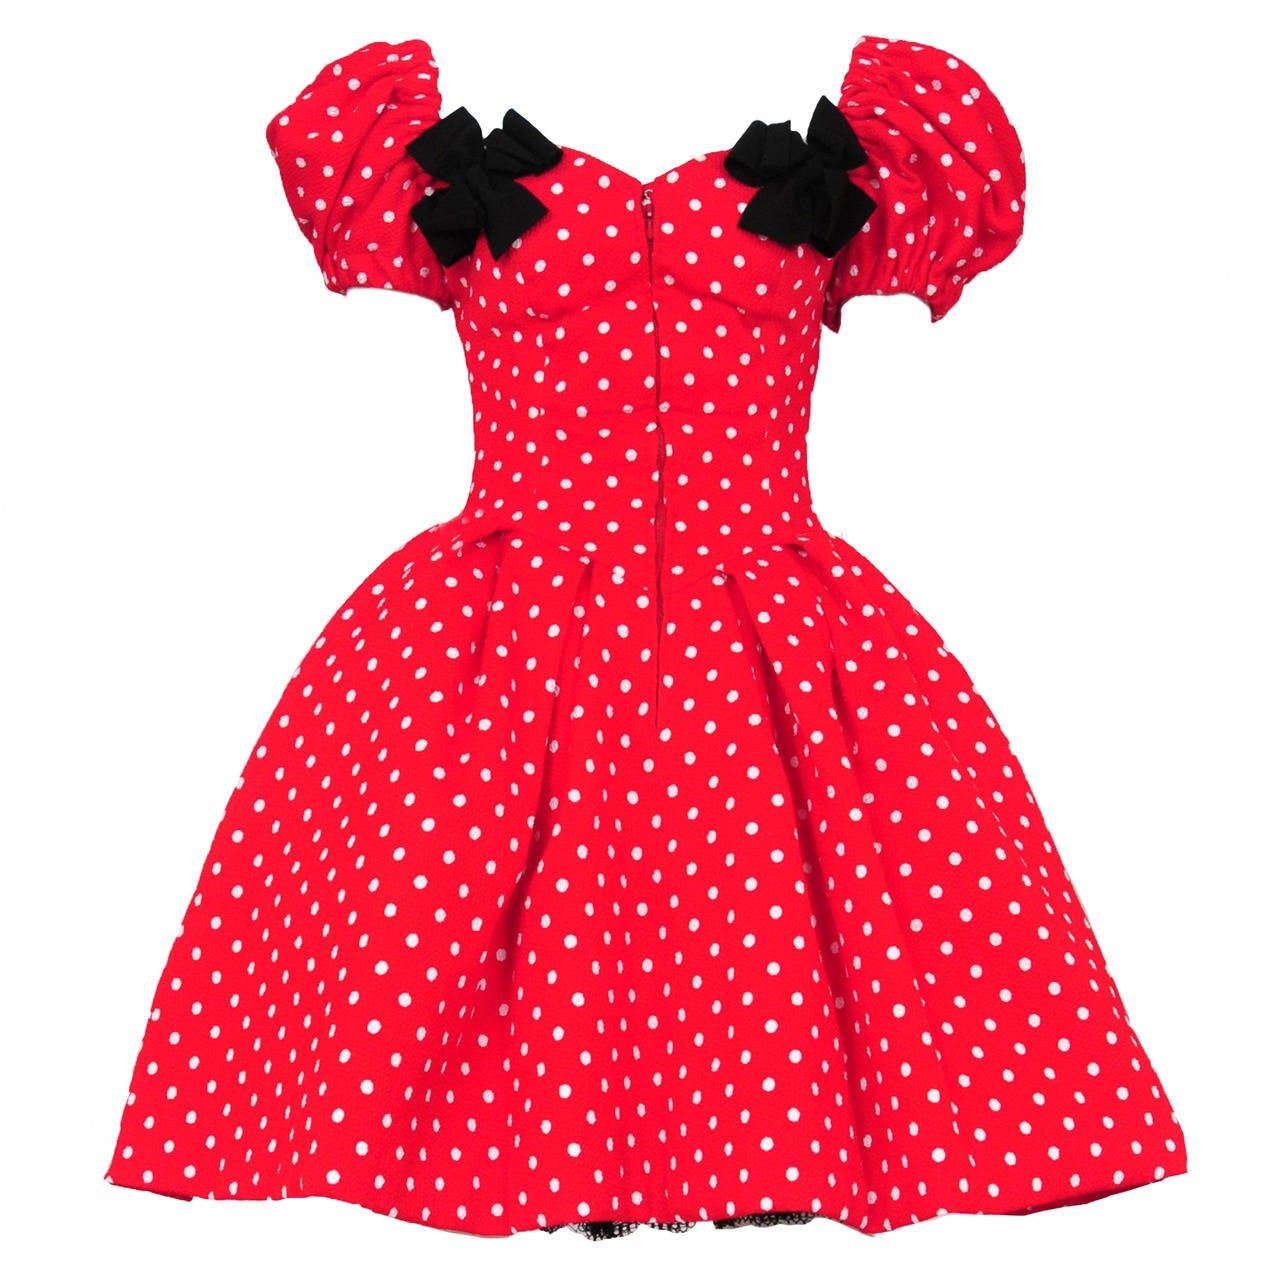 Christian Lacroix Polka Dot Cocktail Dress